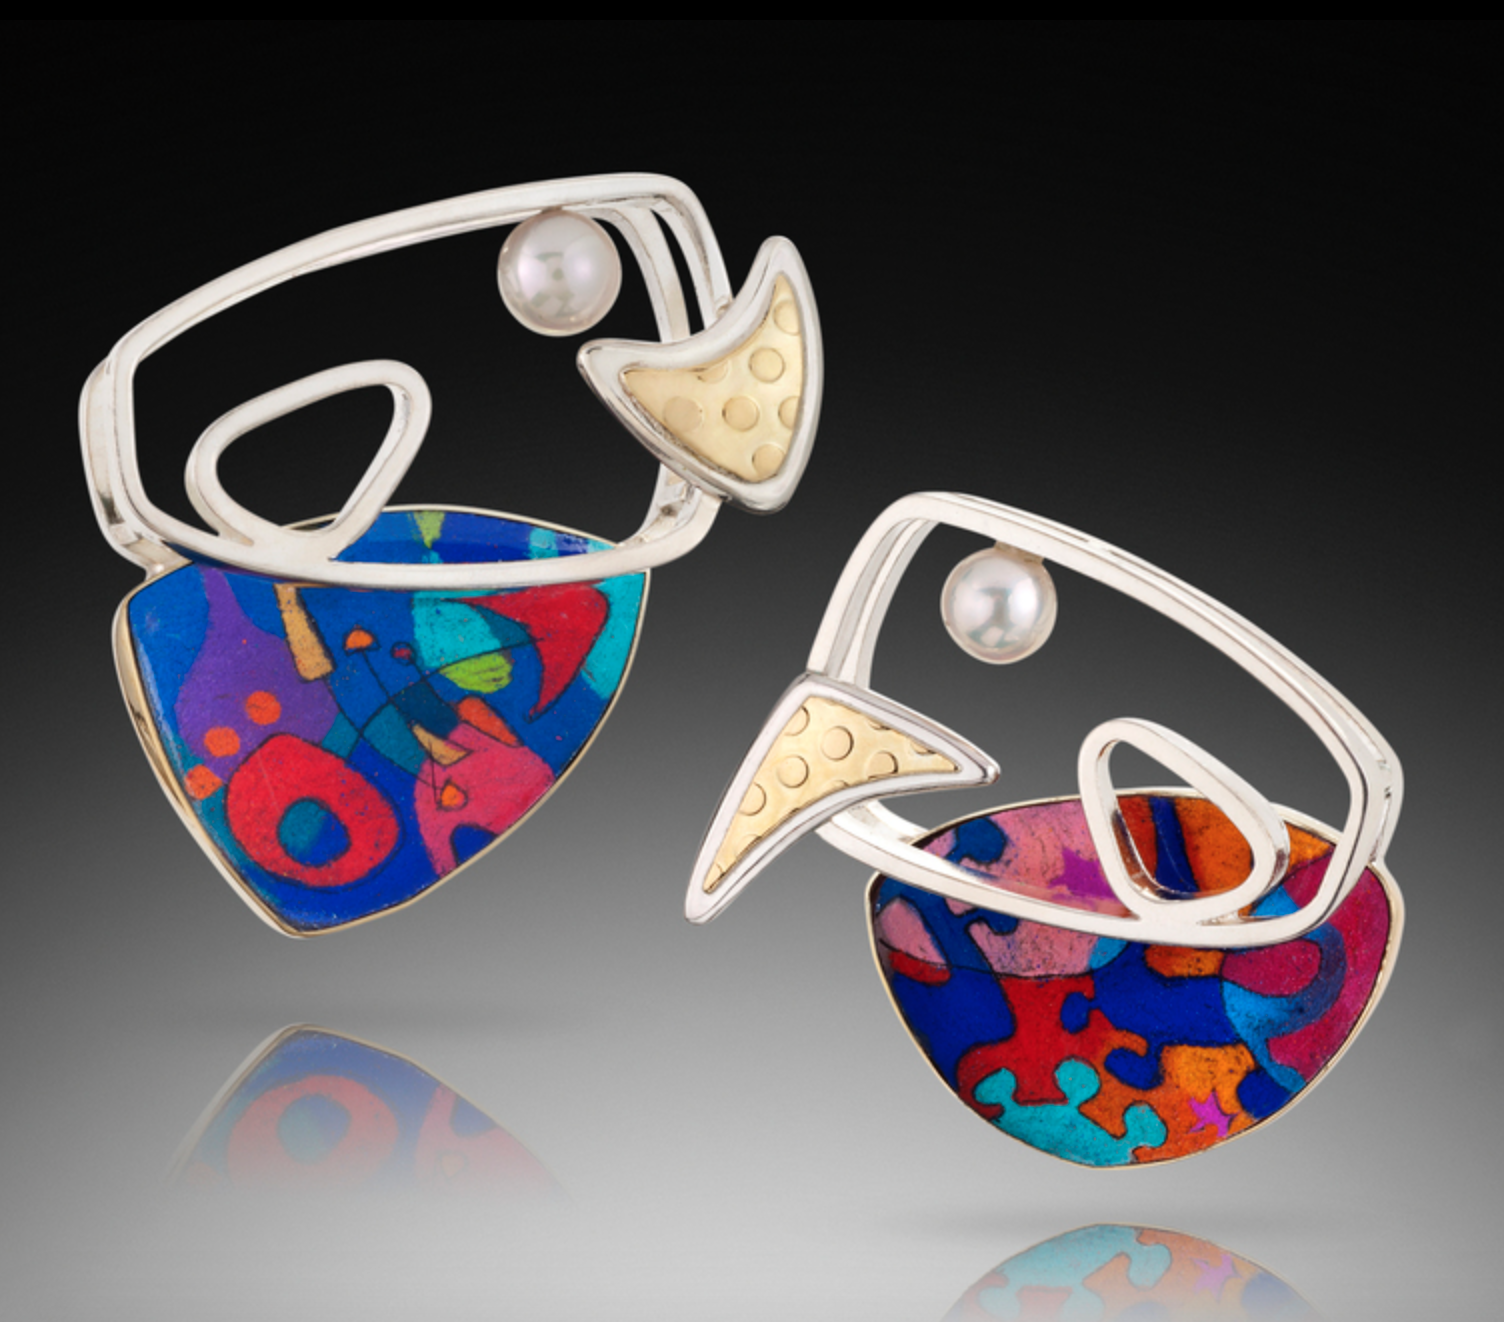 Wendy Newman - http://www.wendynewmanjewelry.comSterling & 18k gold fabricated jewelry w/ colored stones; some handcut. Cabachons made from original prismacolor & ink drawings under enamel. Work features intricate piercing and hand texturing.